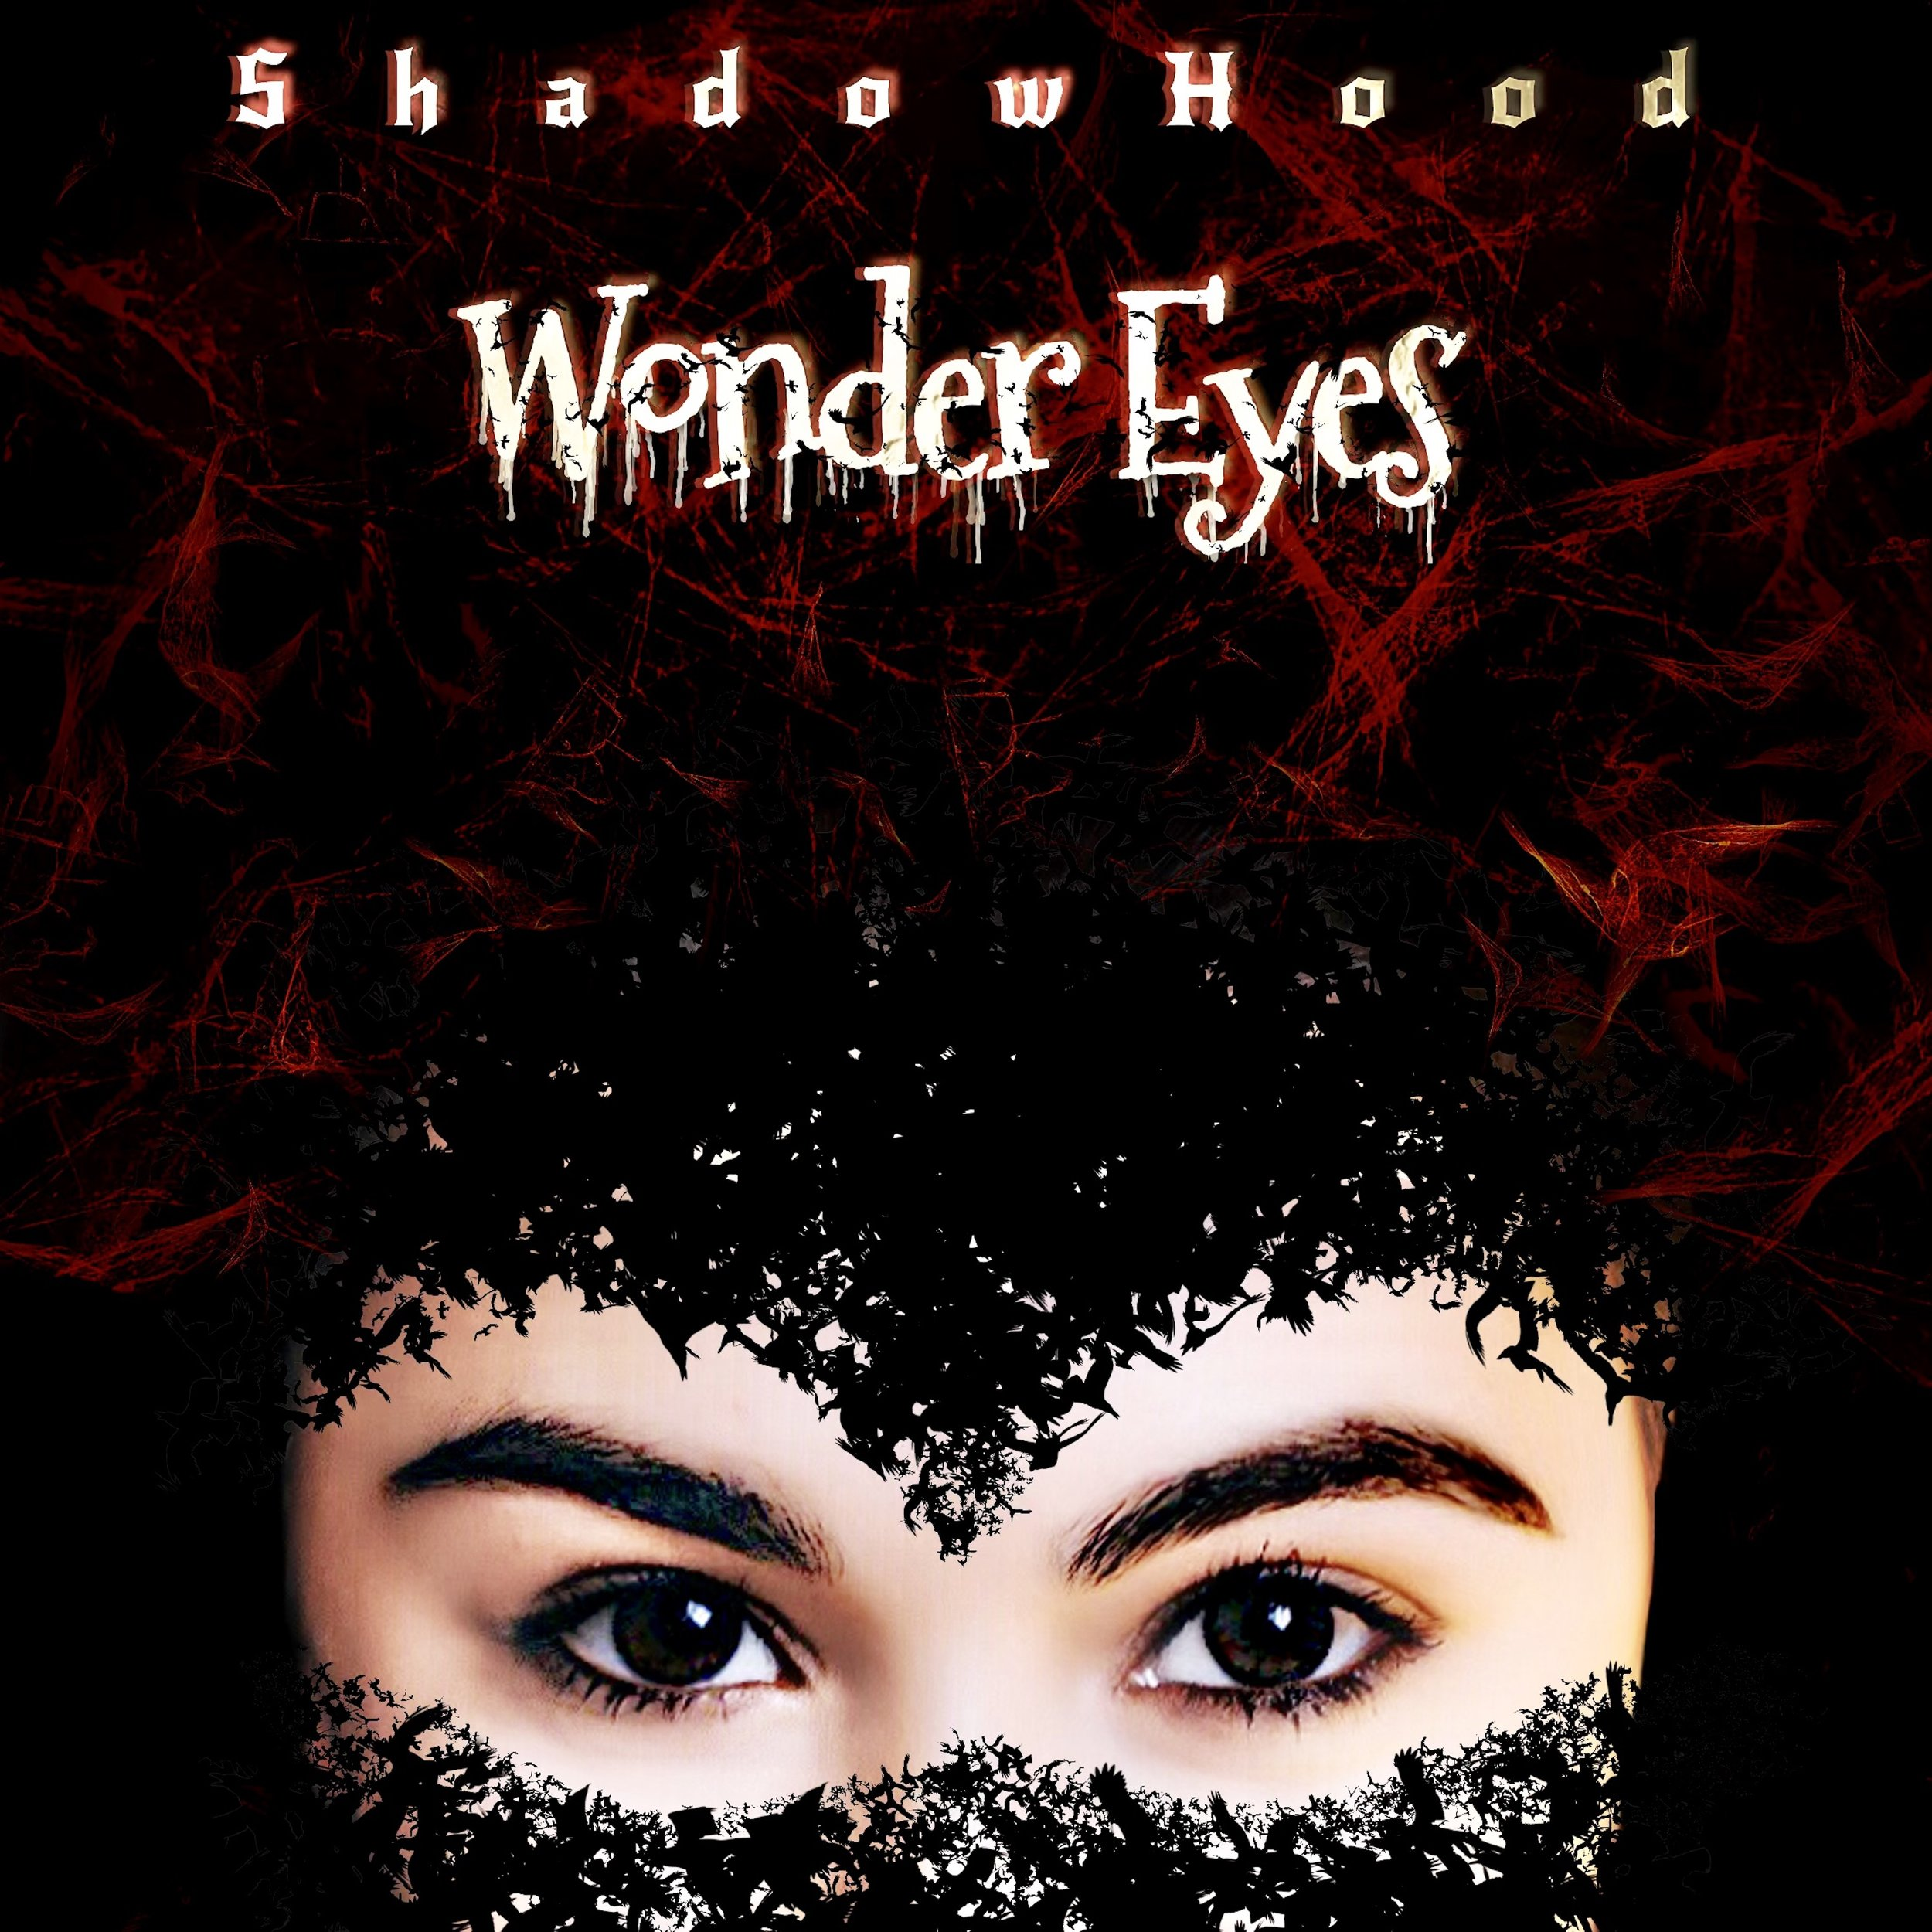 Wonder Eyes - Her magical eyes, bating my sight Mysterious single released by ShadowHoodInspired by a pair of magical eyes, see straight through his soul. A sentimental song for Halloween.As she looking outside through the window, her eyes met mine. A sudden connection attracted me.I submitted my eyes to her magic, from her eyes, my own shadow reflected.Her eyes are a pair of hollow, When you look inside, nothing escapes.